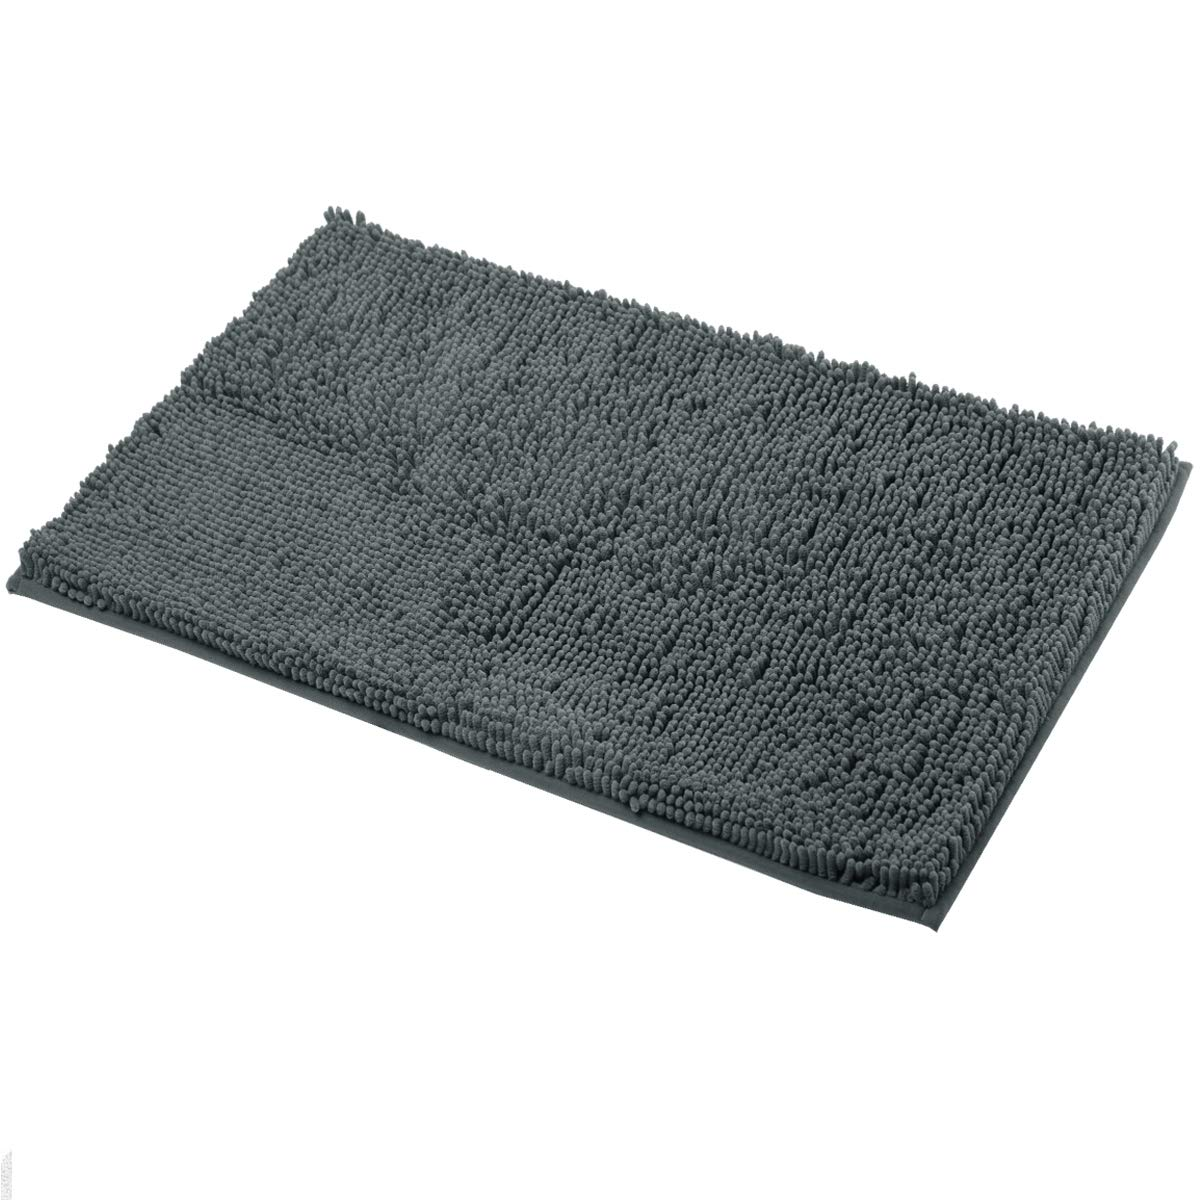 Mayshine Non-Slip Bathroom Rugs and Door Mat Mud Dirt Trapper Mats(39''x24'') Machine-Washable Absorbent Water Microfibers - Dark Gray by MAYSHINE